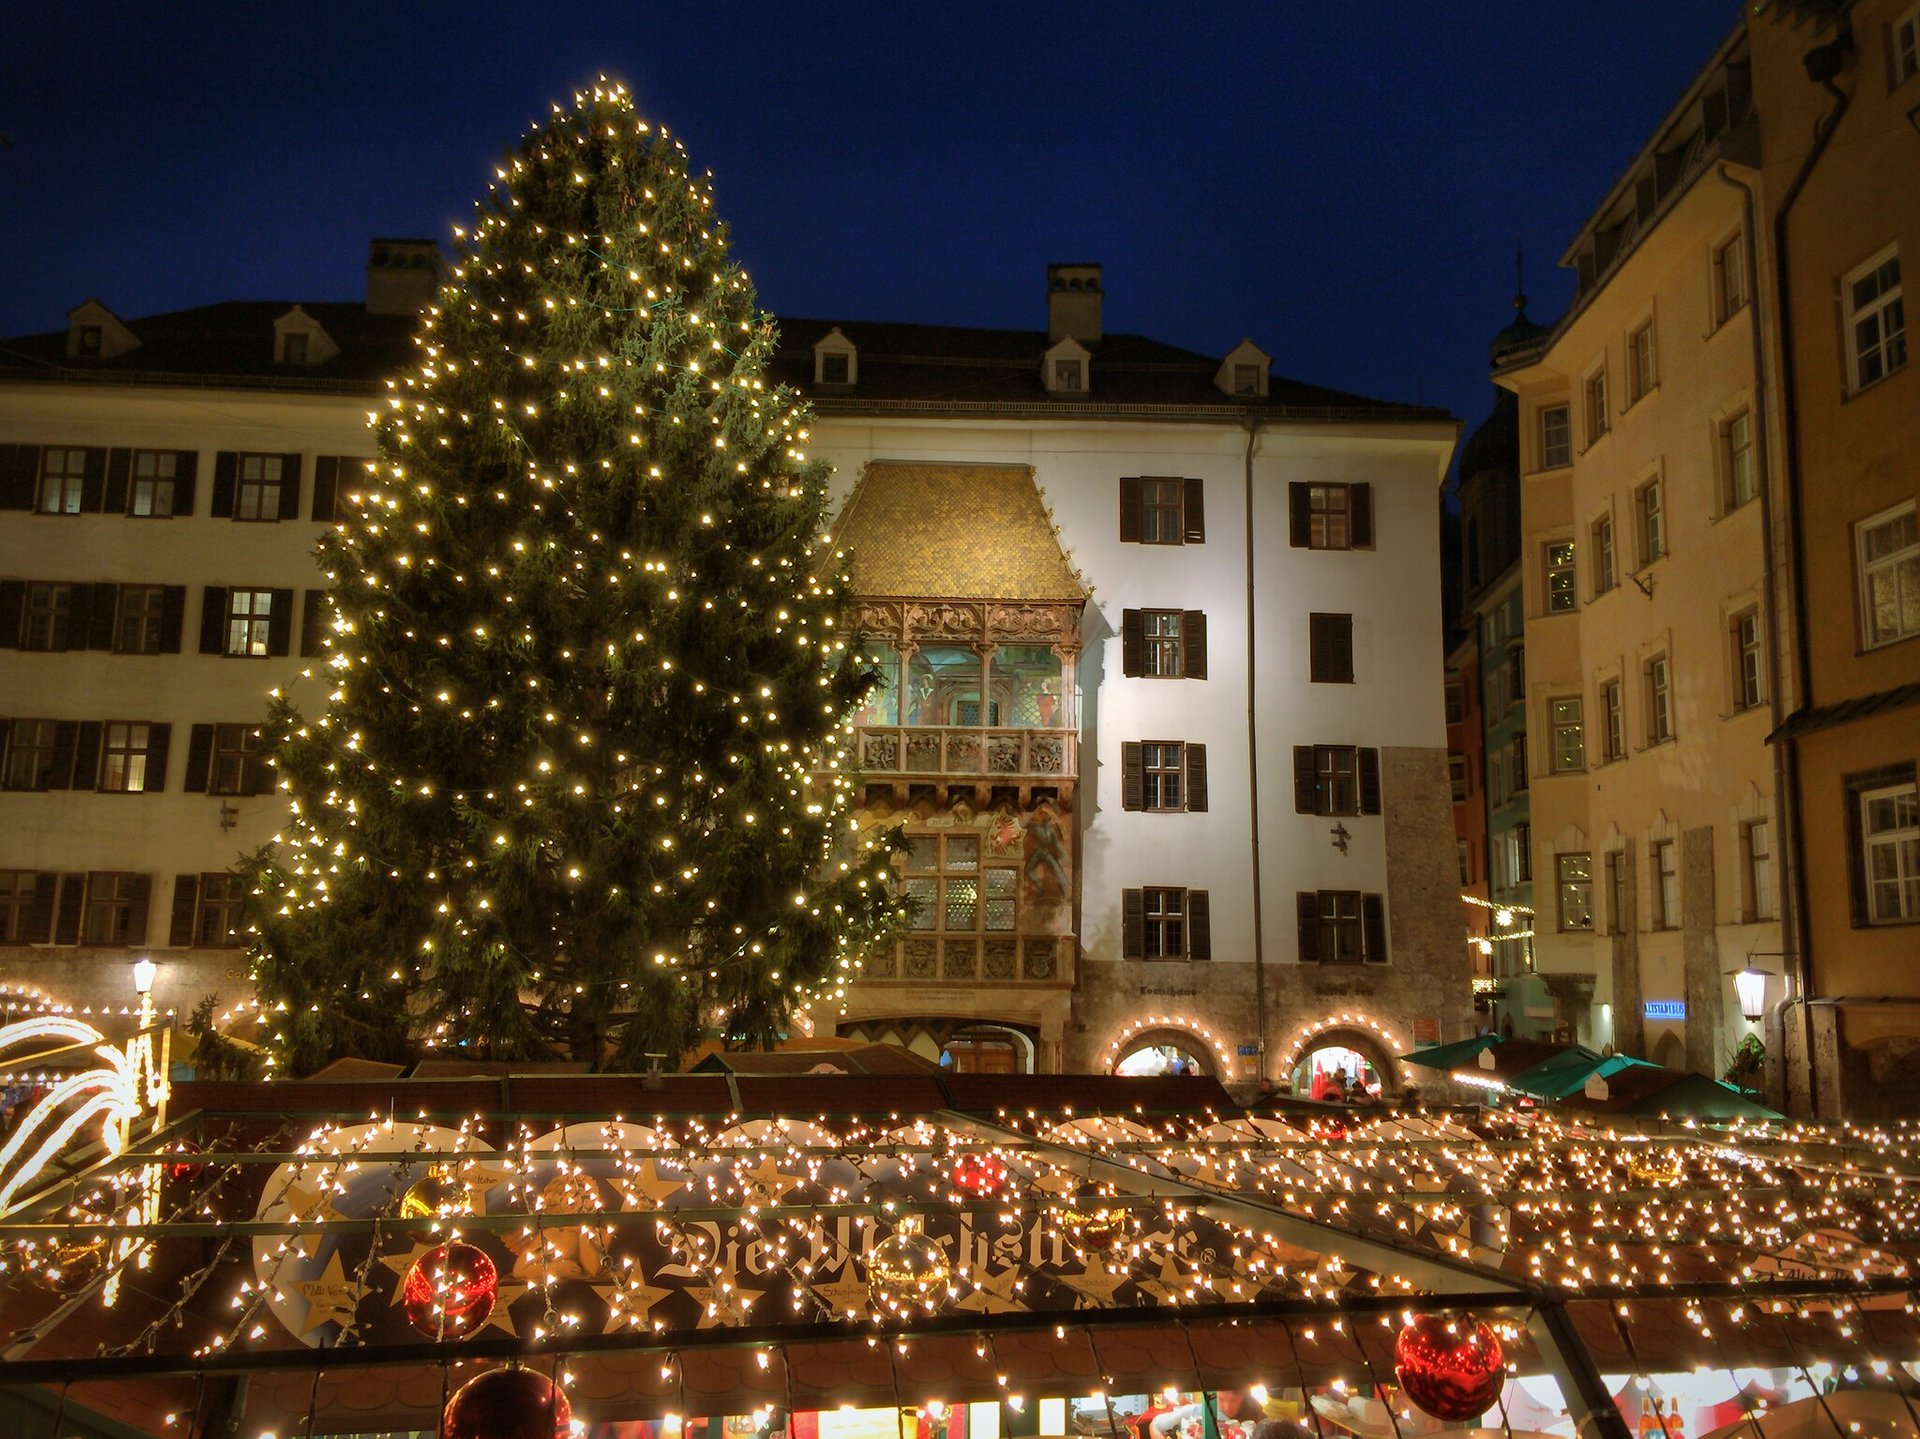 Old Town Christmas Market by the Golden Roof, Innsbruck 2020